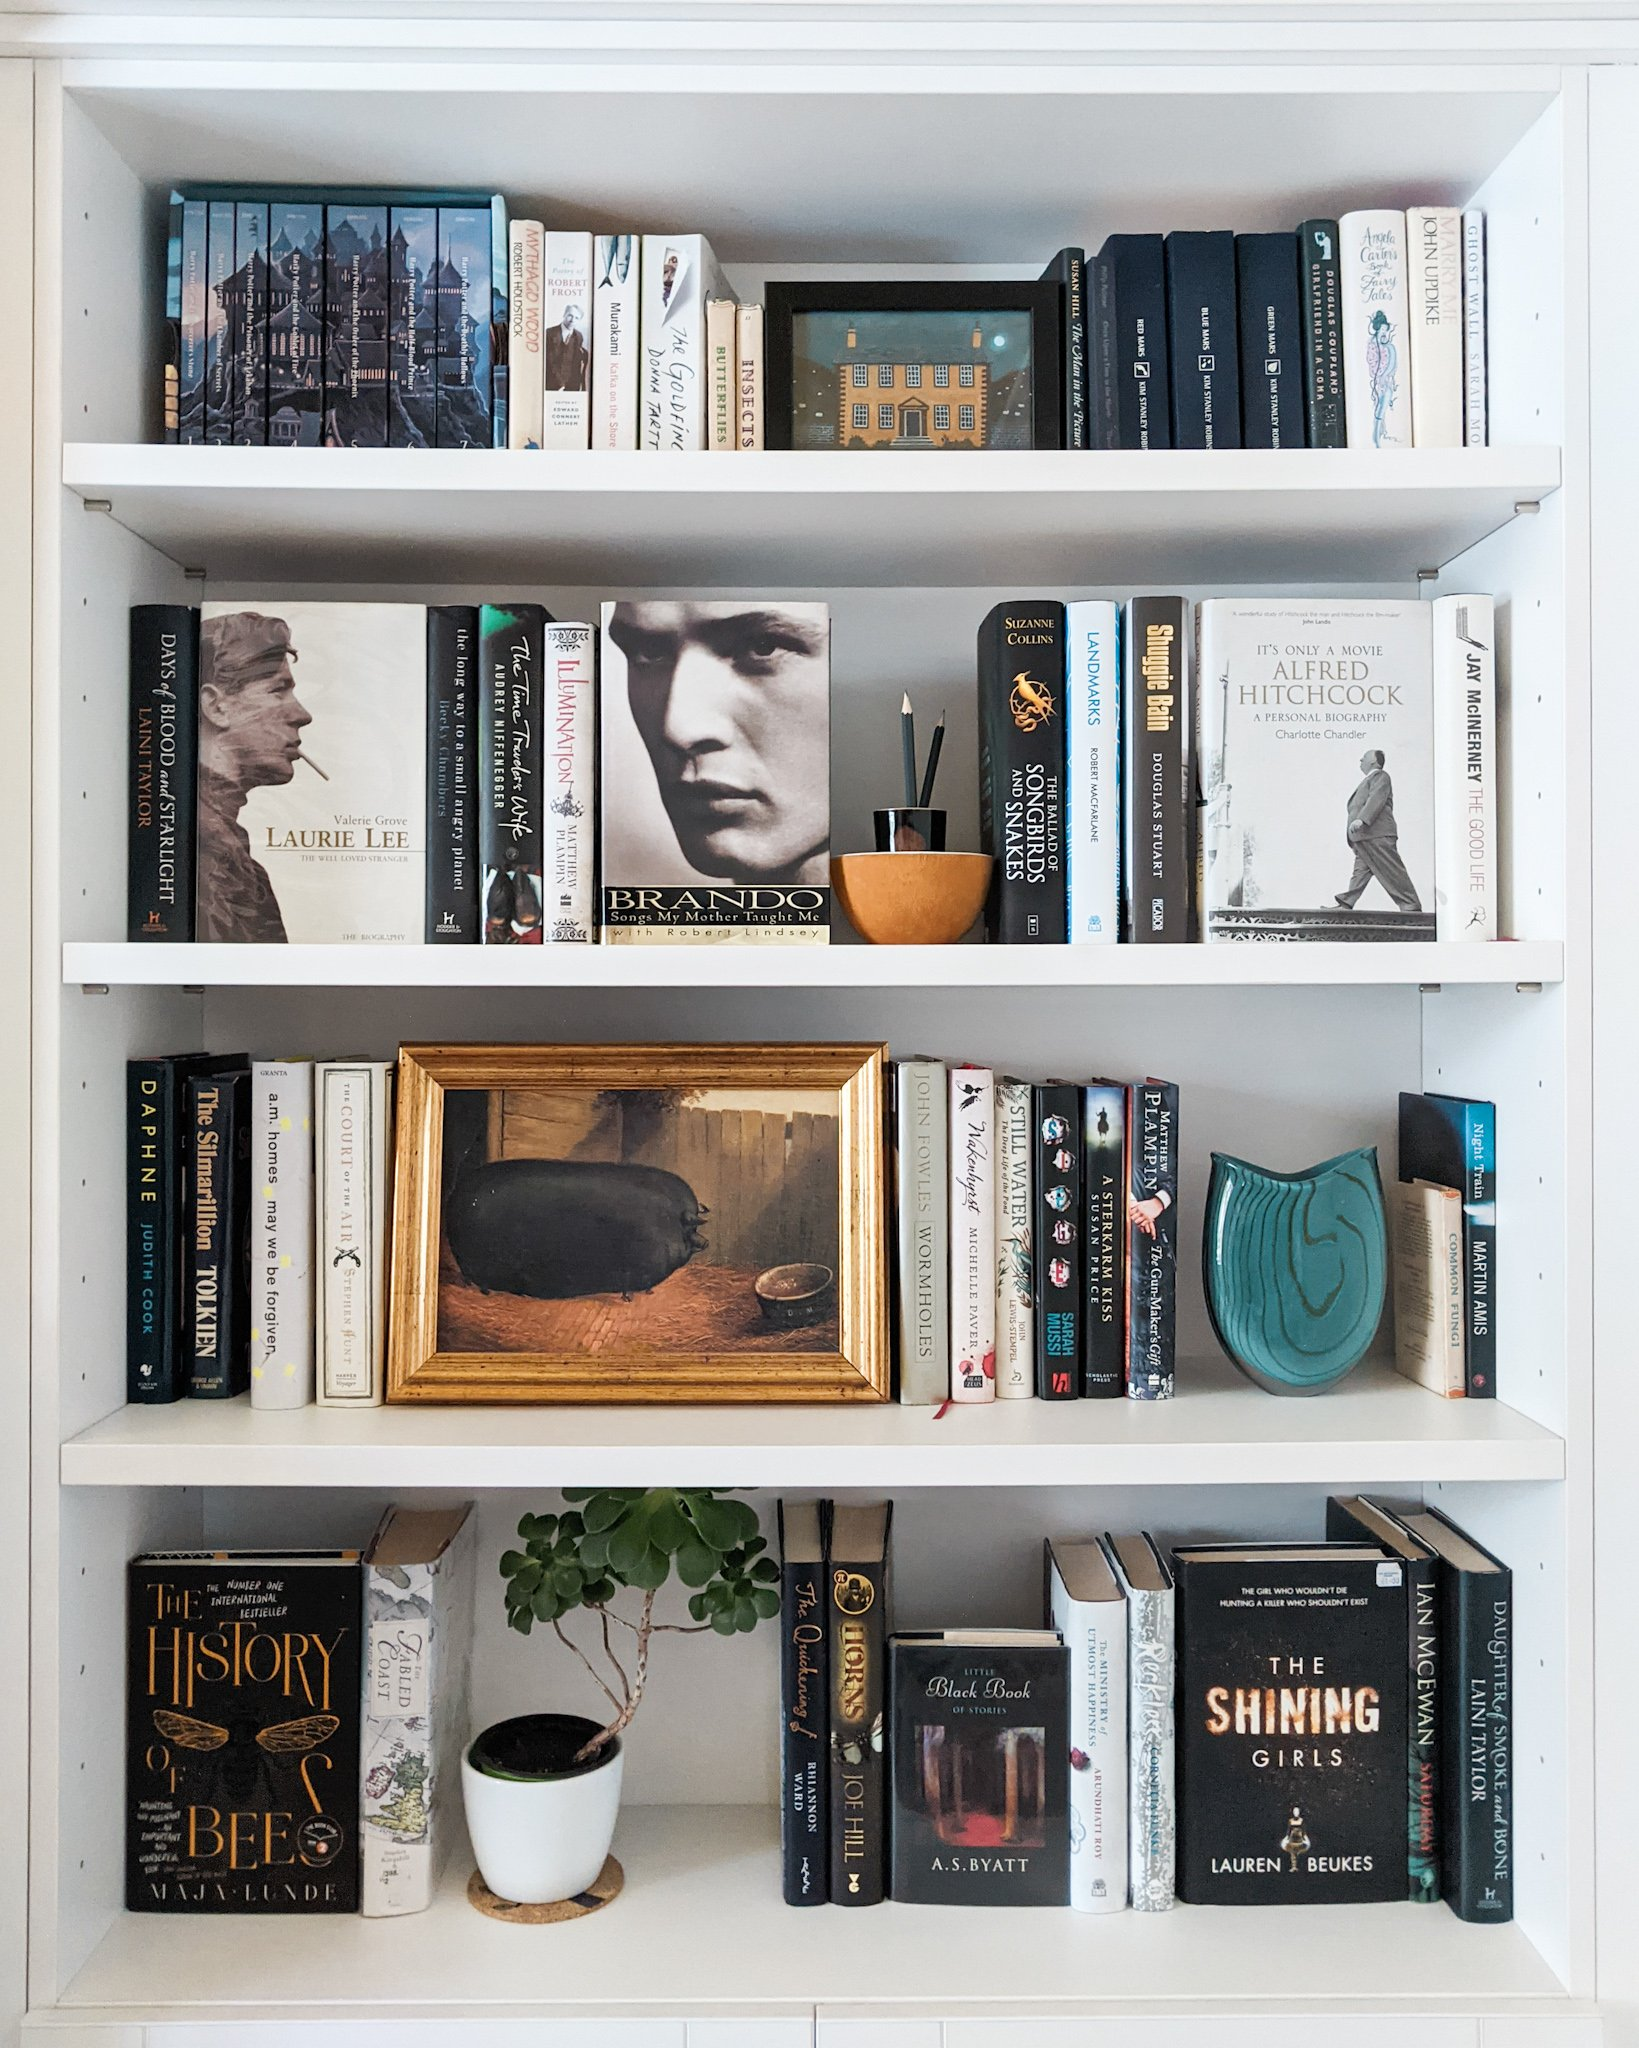 A bookshelf shelving ideas showing black and white books mixed with prints and plants